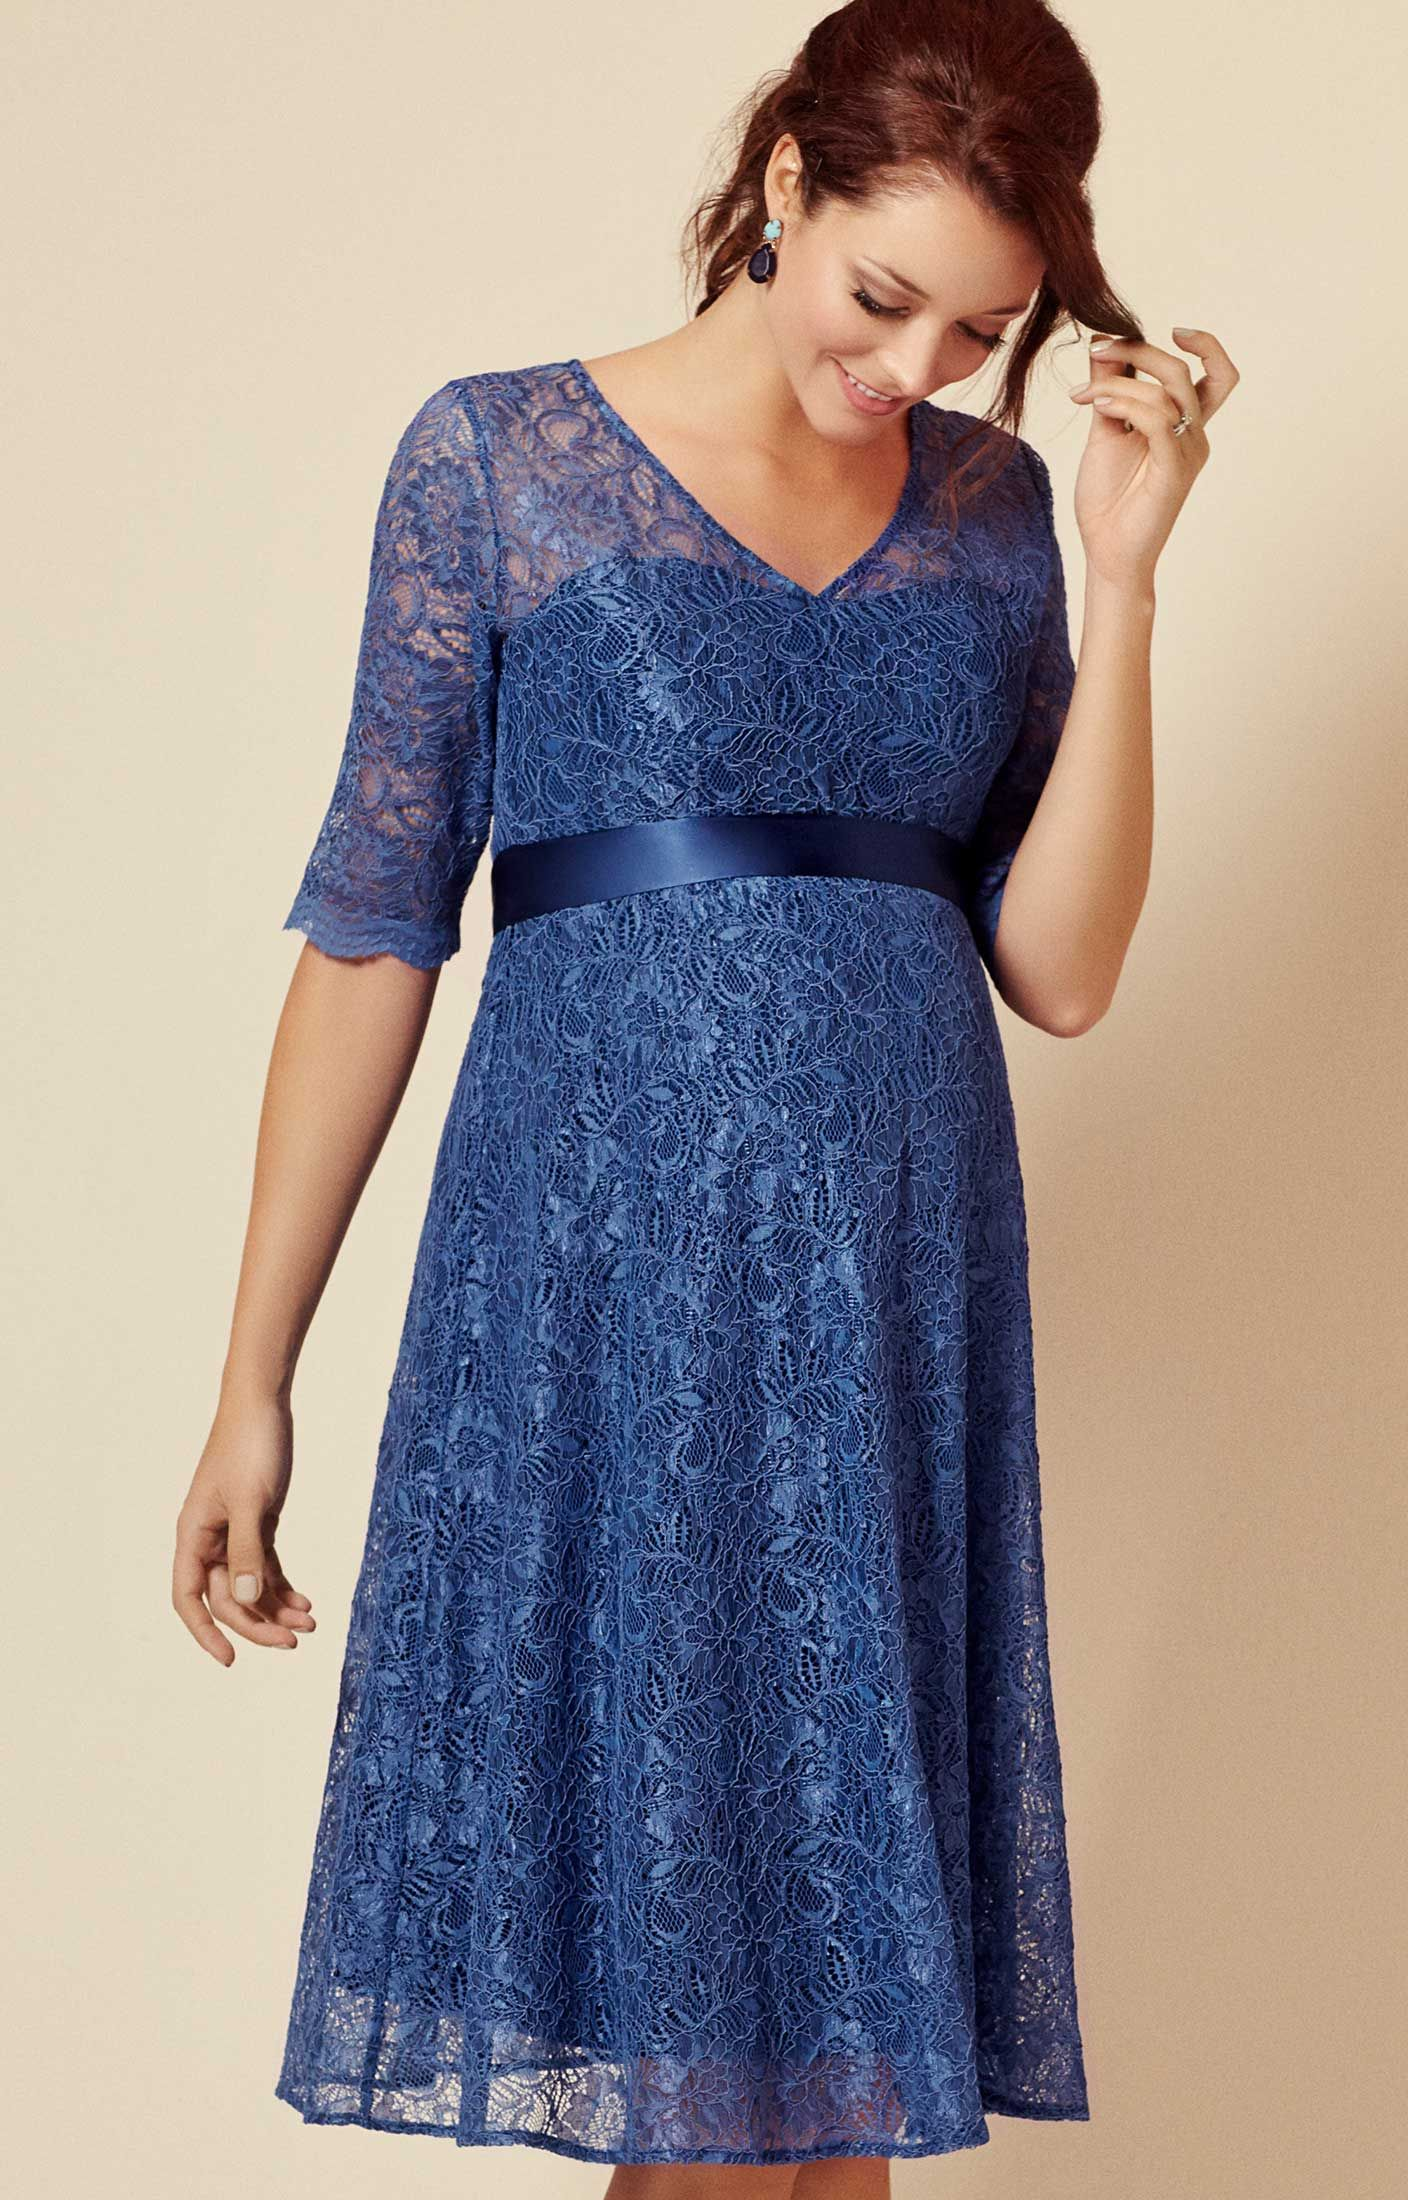 582e349e2239e The fun, floaty shape of our Flossie maternity party dress makes it perfect  for parties. Cut from premium corded blue floral lace and lined with  contrasting ...